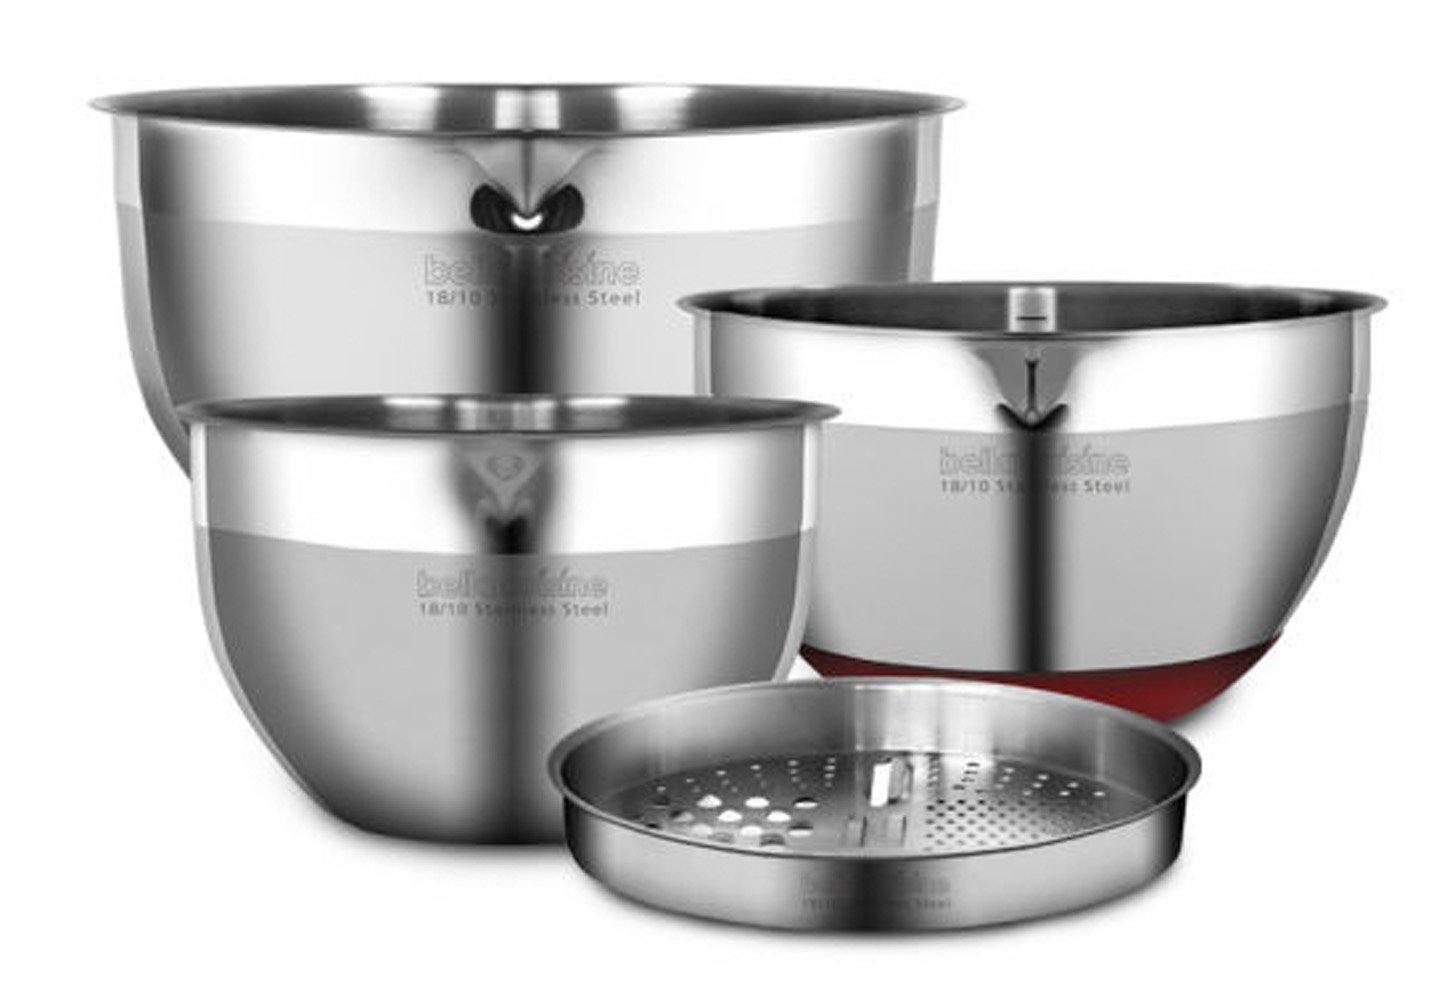 Large Capacity Stainless steel 18/10 Salad Bowl Mixing Bowl Pot 4PC Set Confectionery Baking Dough Fruit Vegetables Cleaning